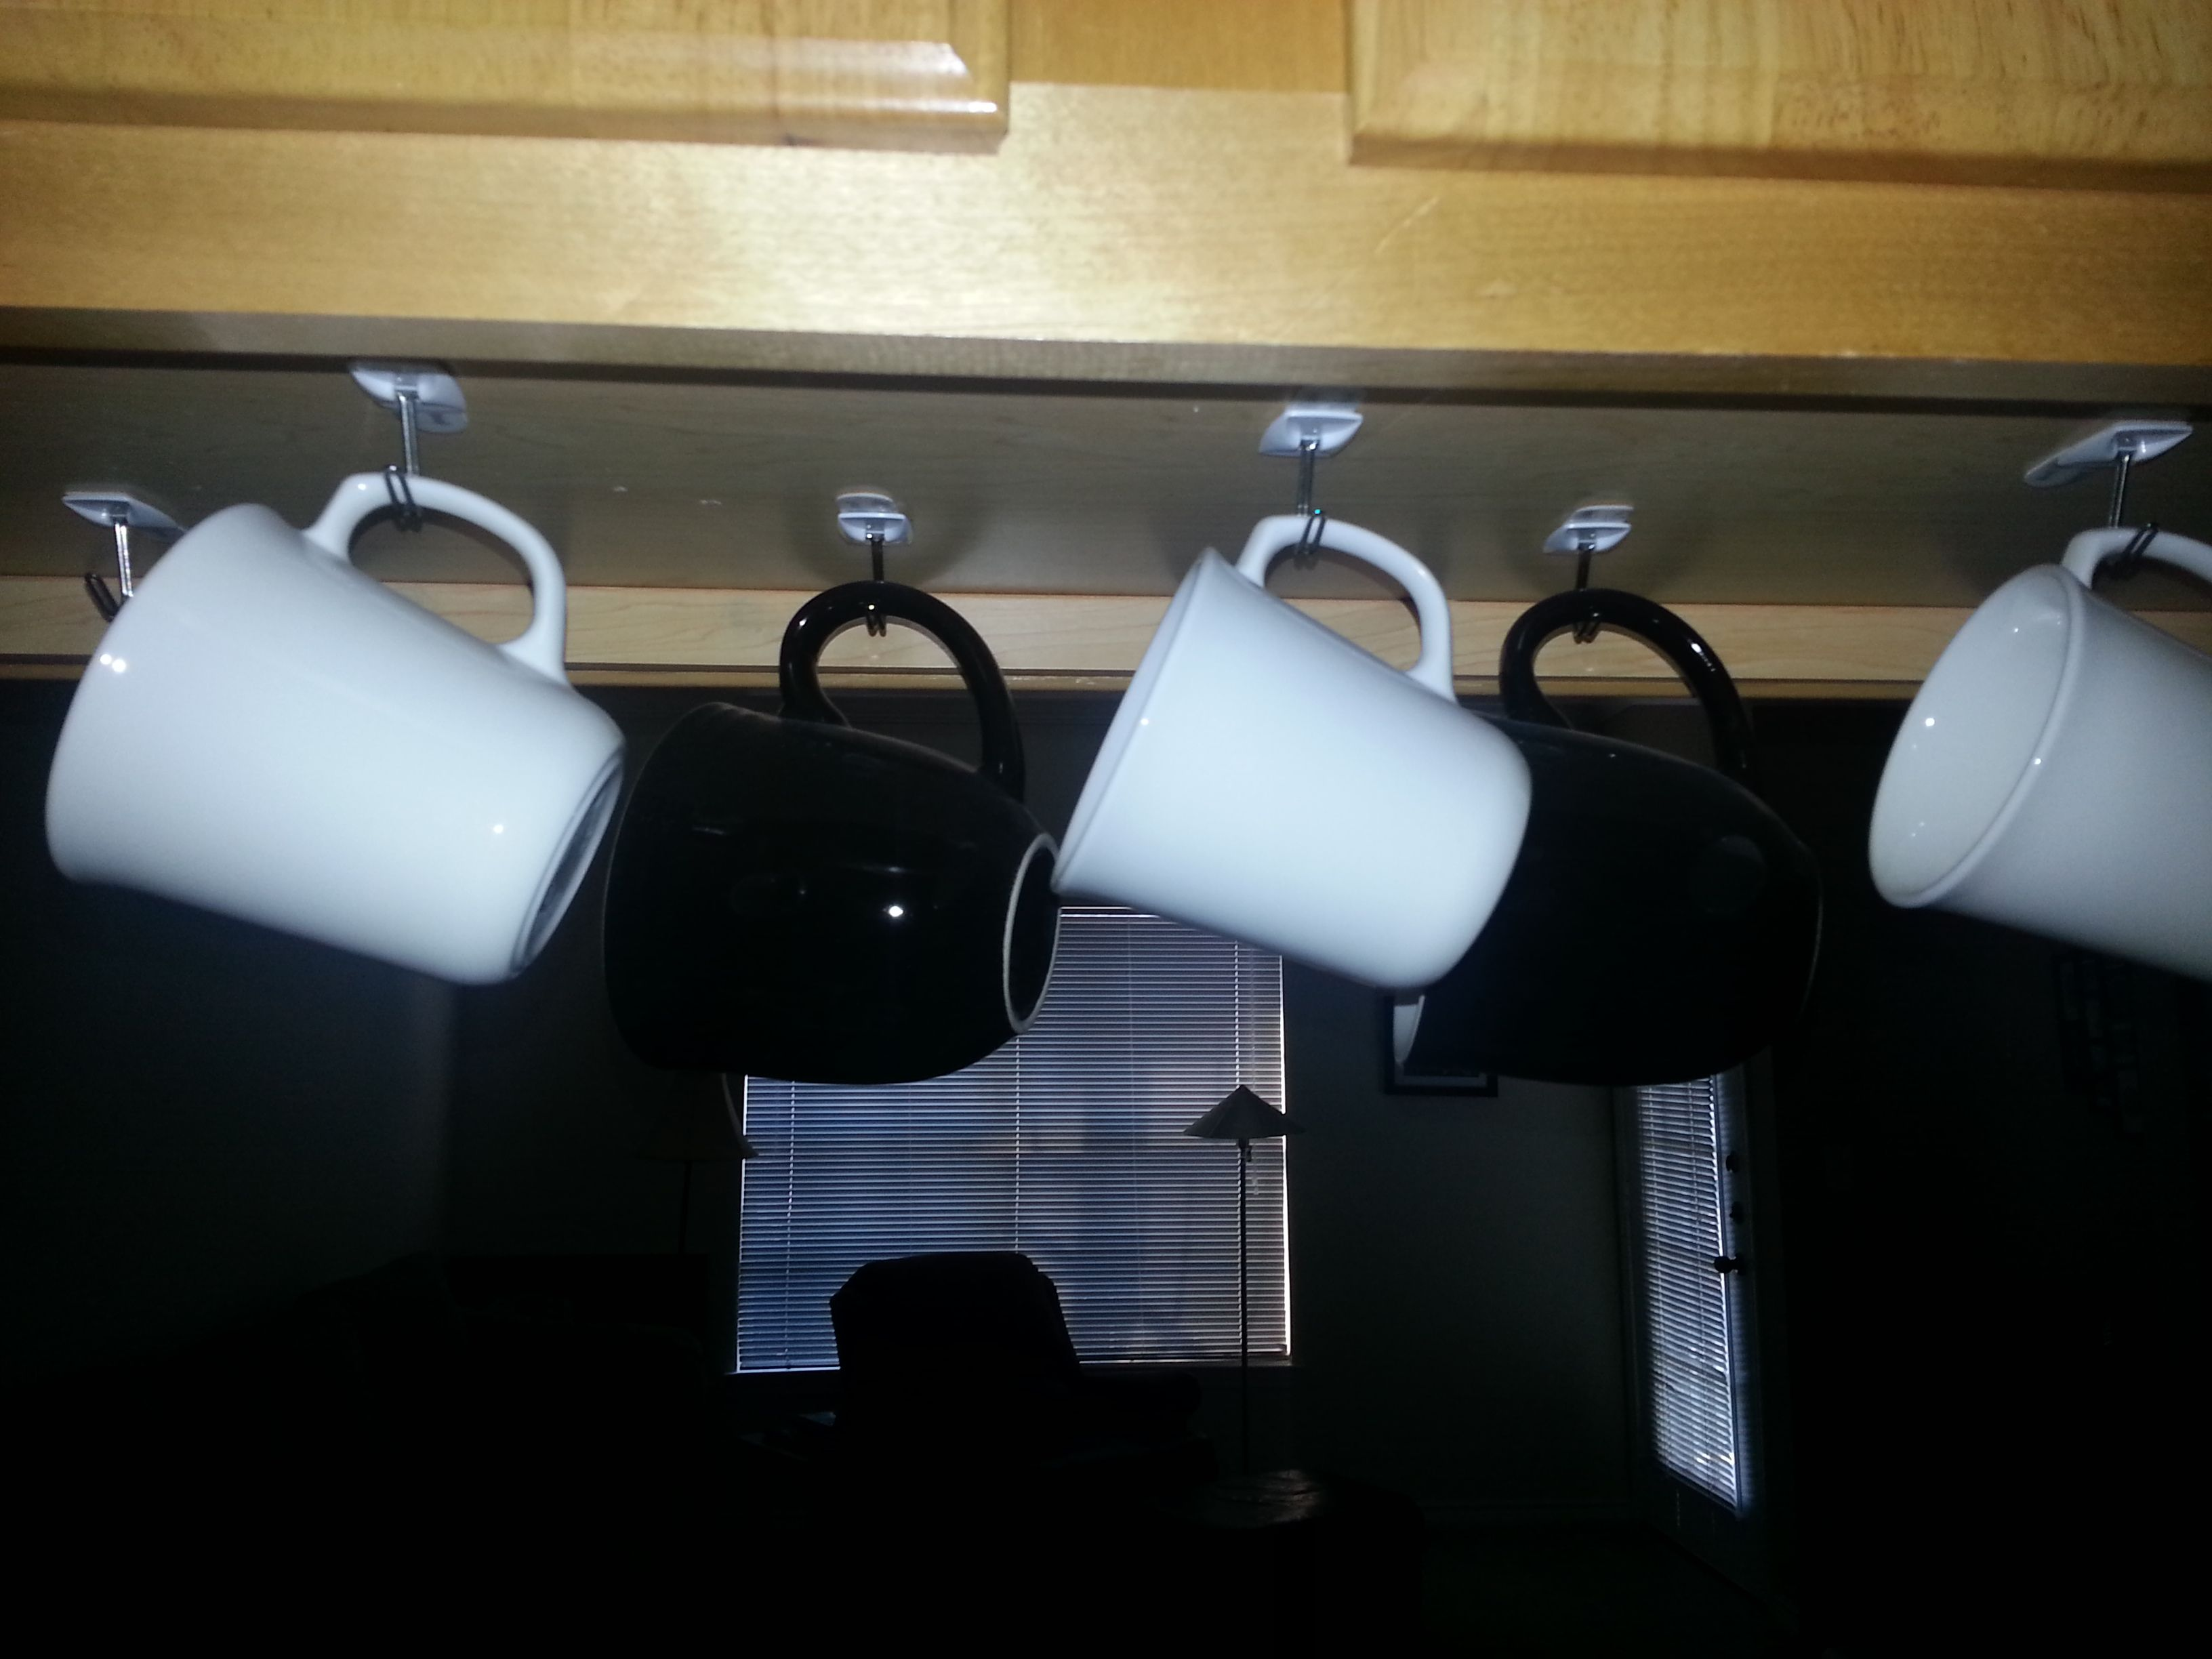 I used command strips and hooks to hang my mugs from the top